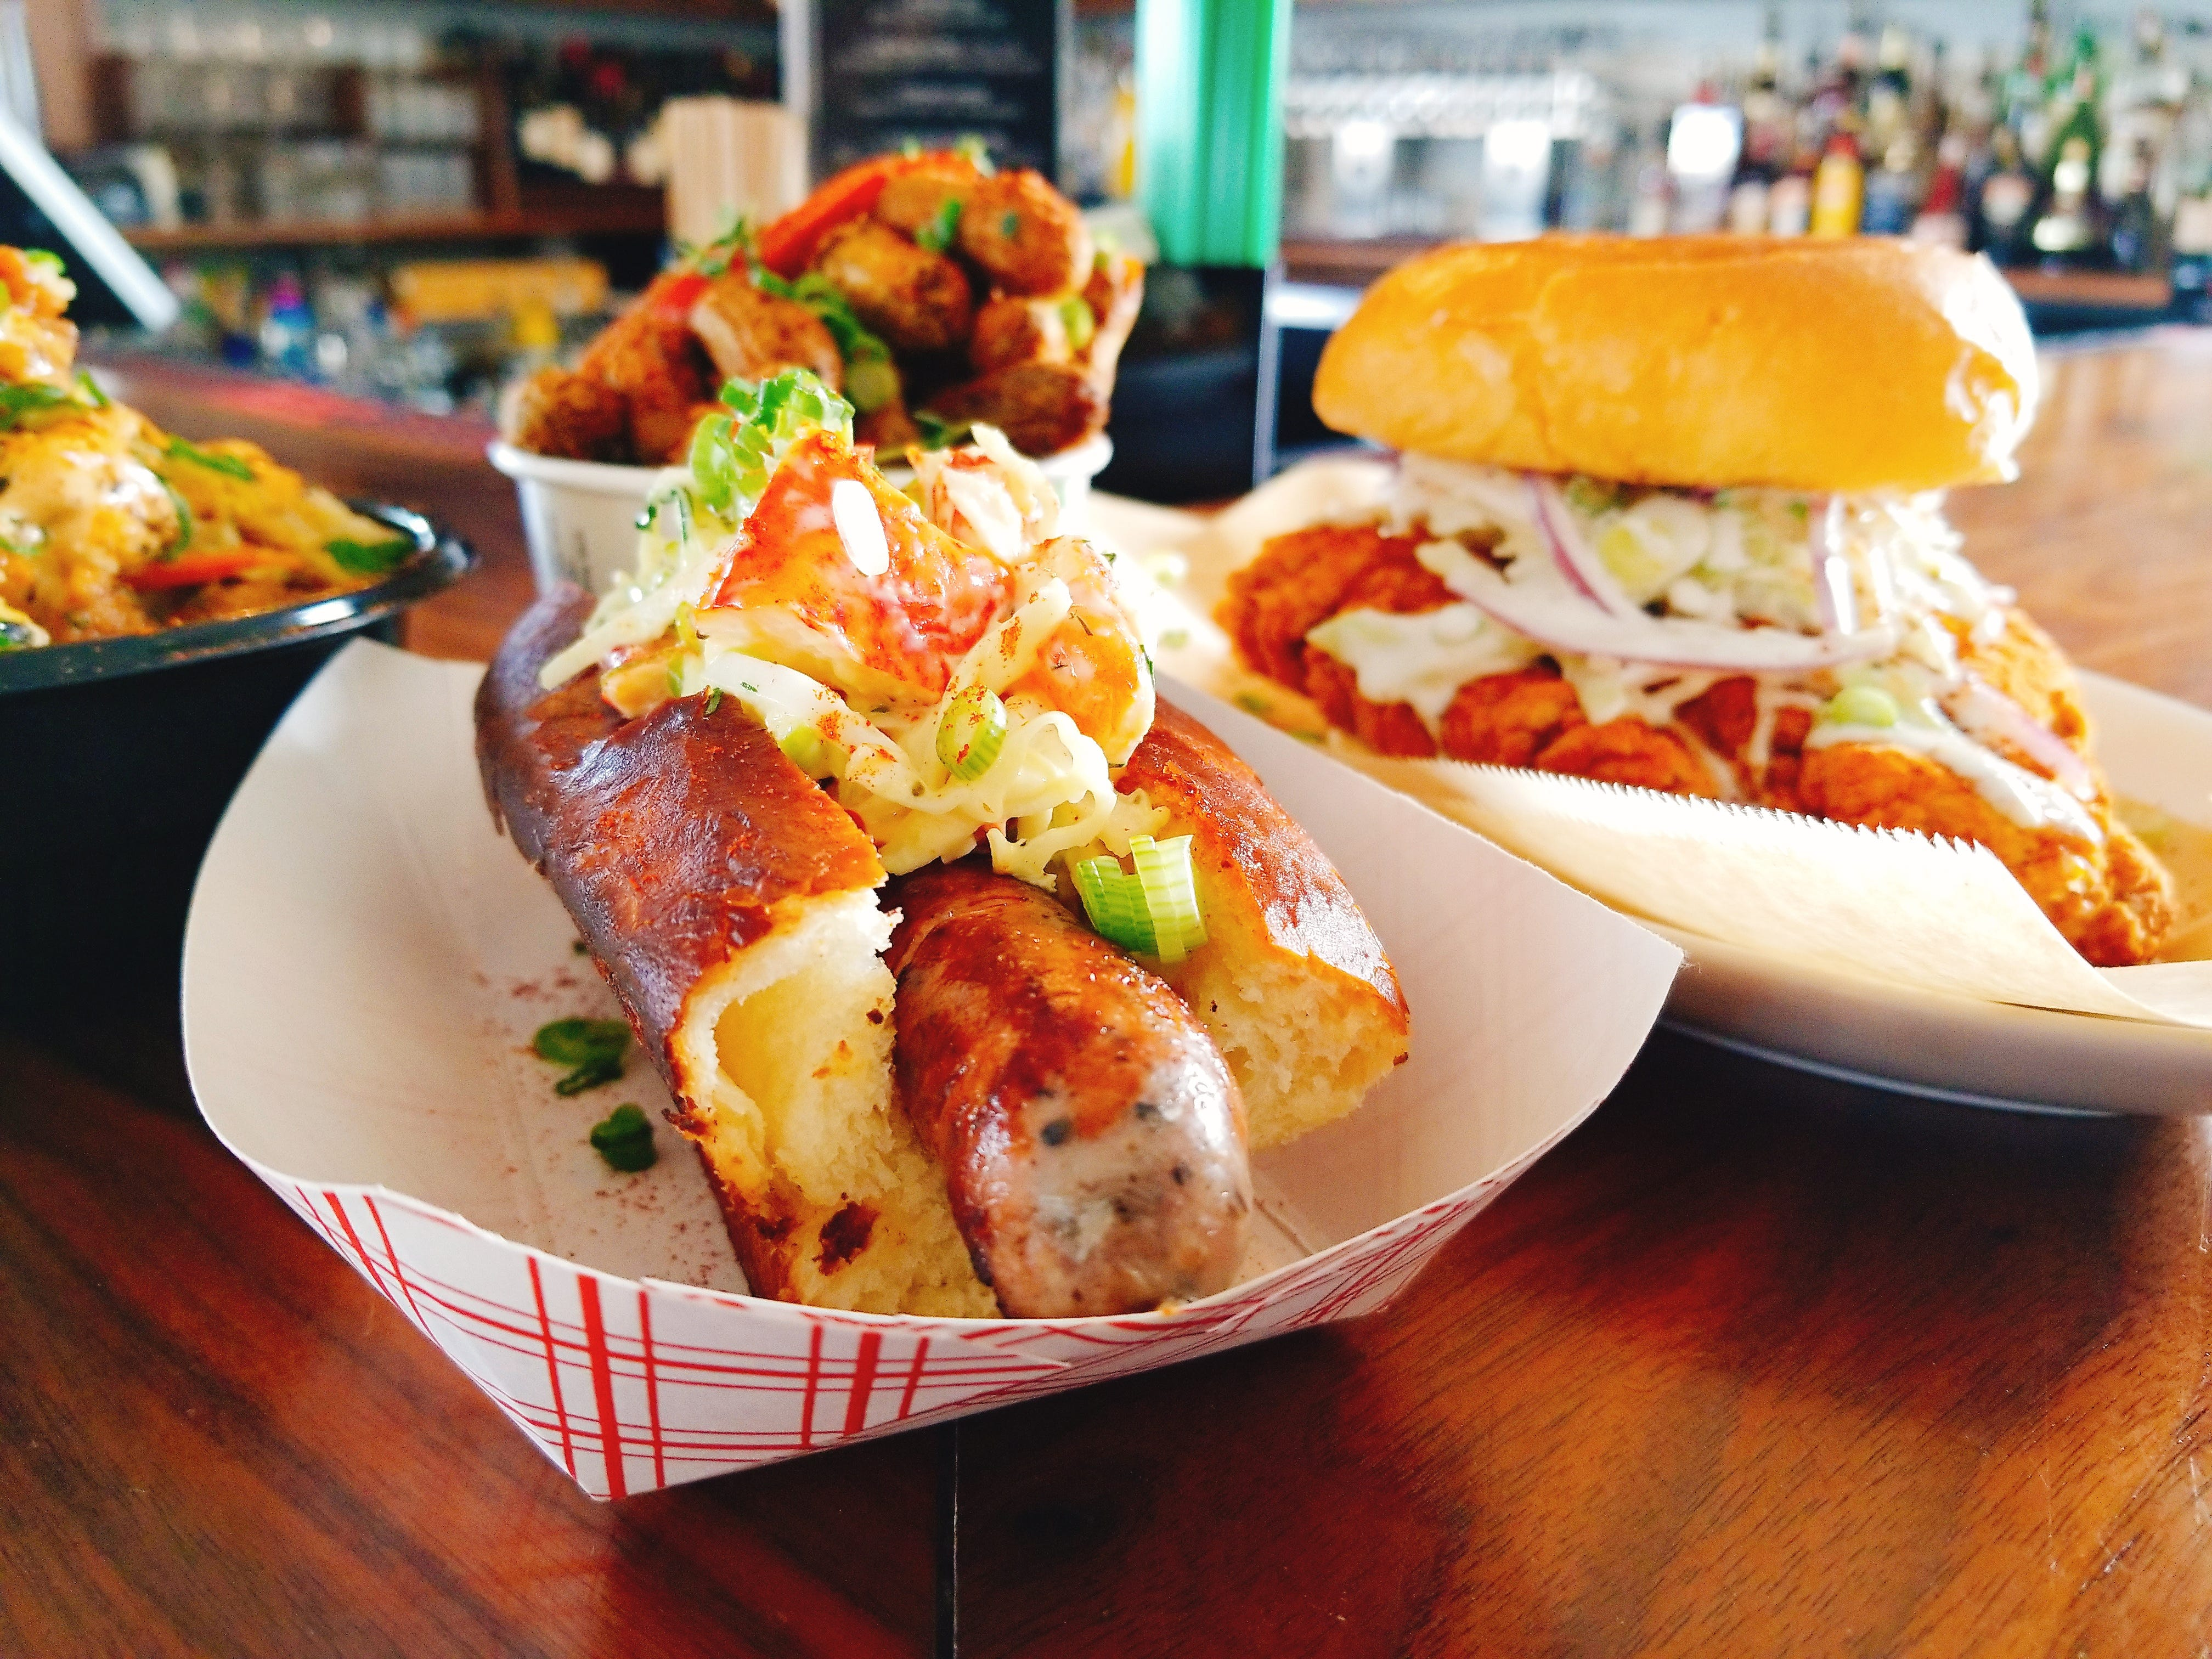 Scrapple Hot Dogs Topped With Lobster Get One While You Can